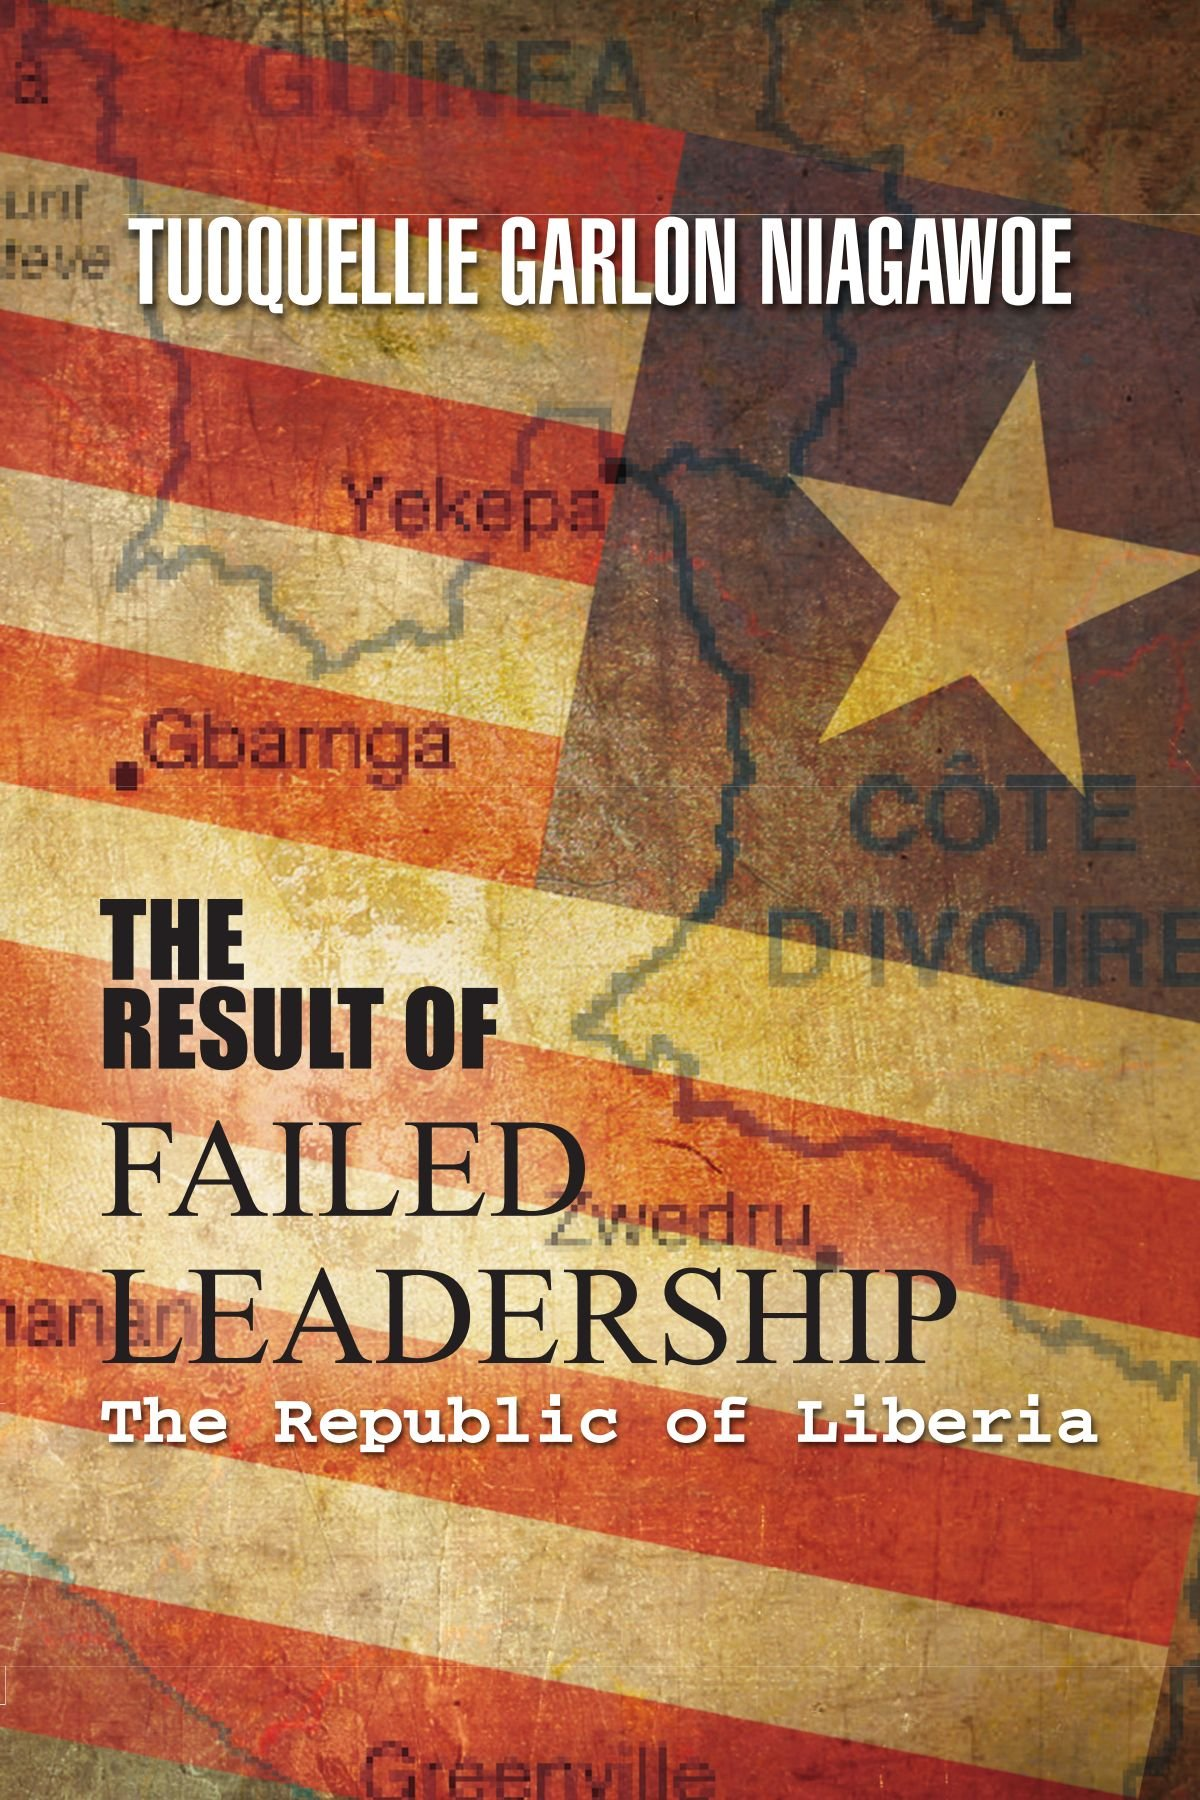 THE RESULT OF FAILED LEADERSHIP: The Republic of Liberia